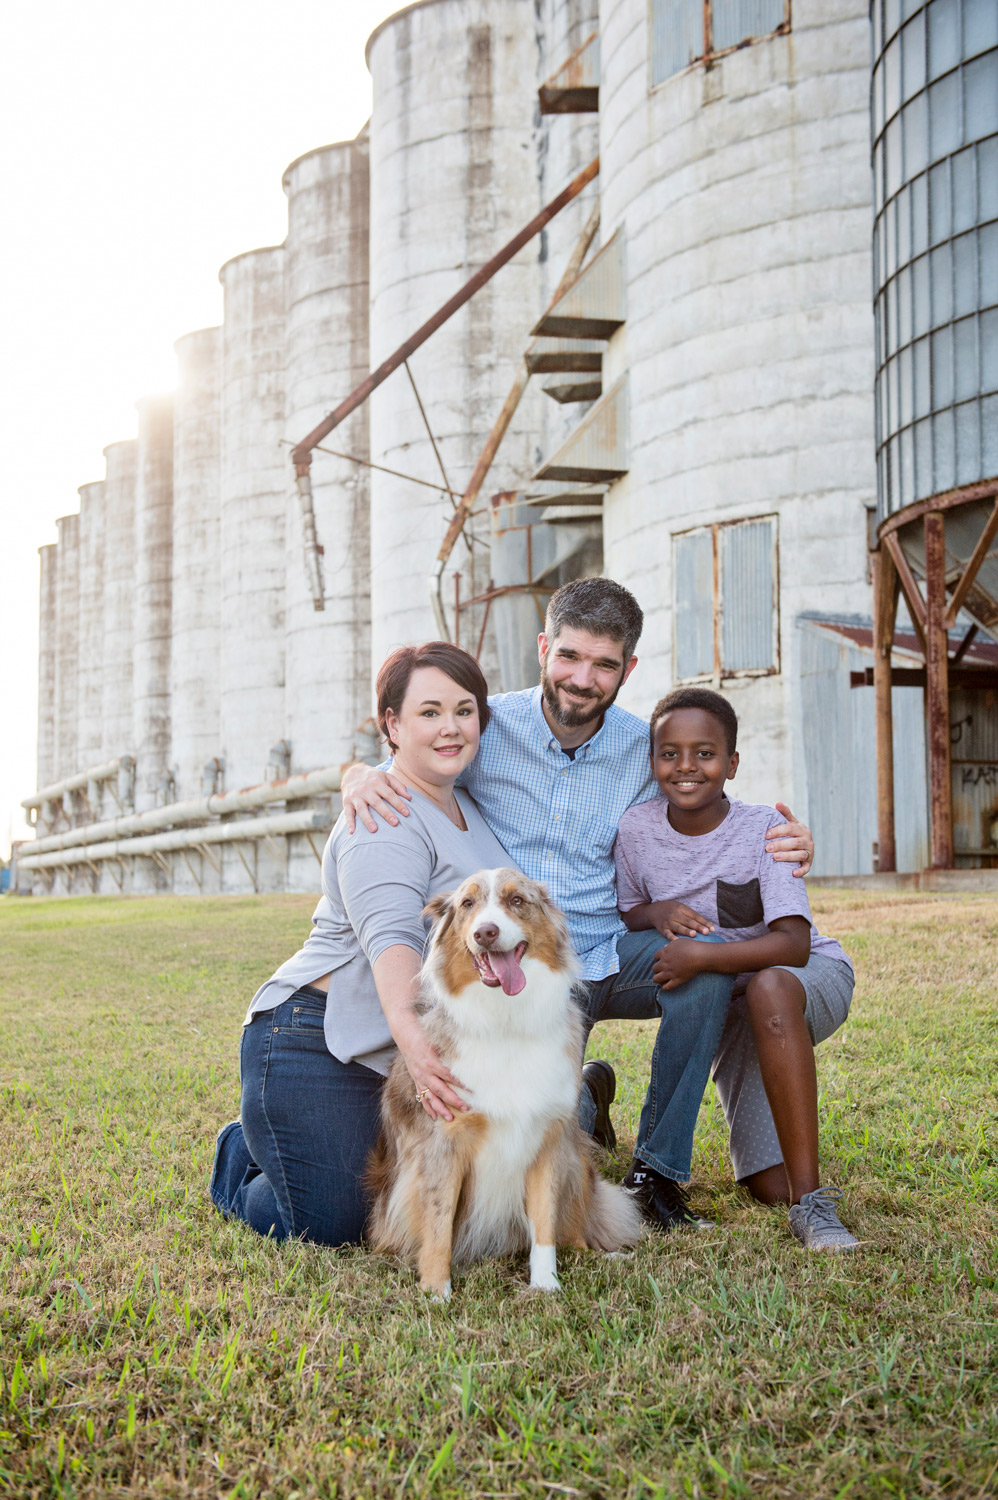 Katy-texas-silos-family-photography.jpg